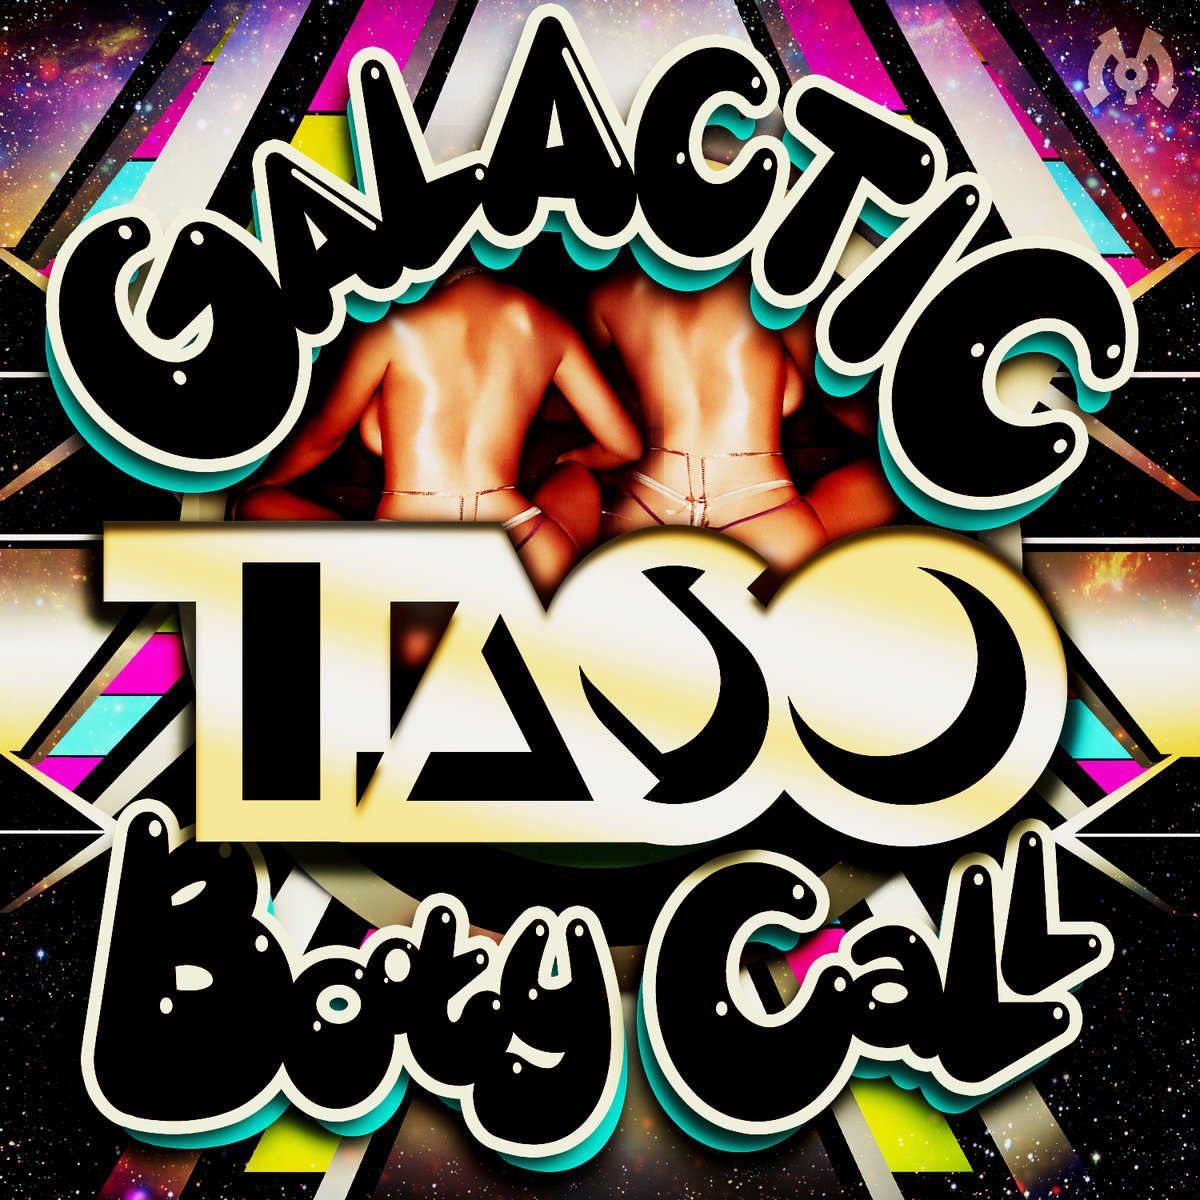 Taso - Galatic Booty Call (artwork)